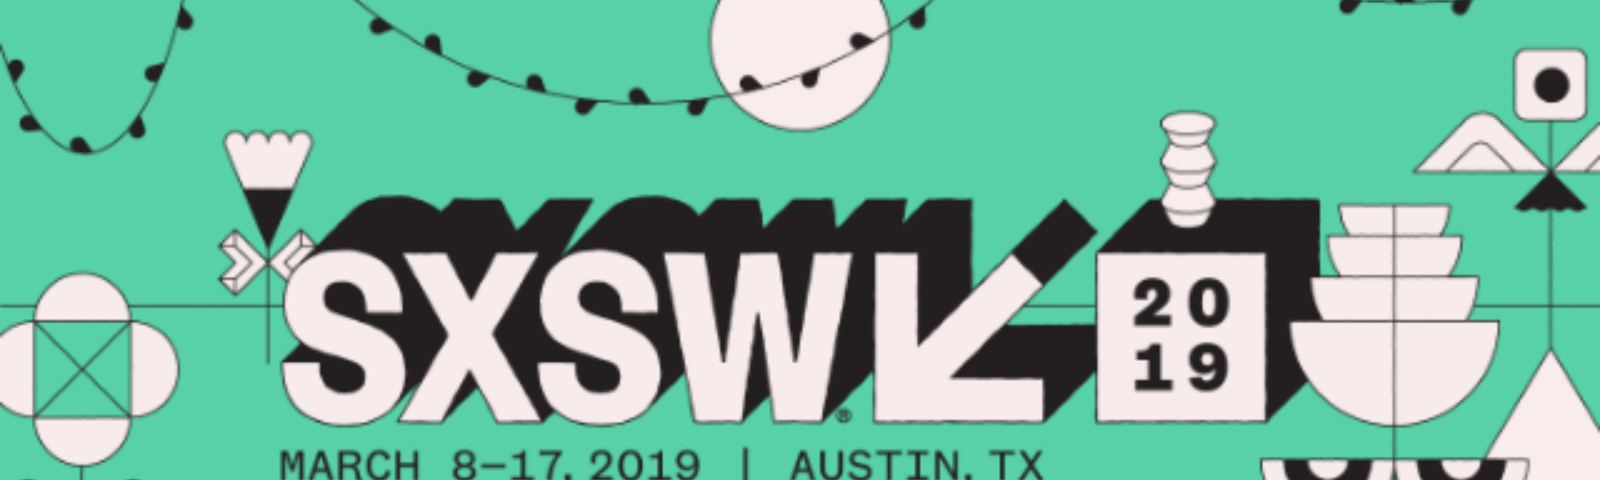 Best digital health events on SXSW that I'm going to